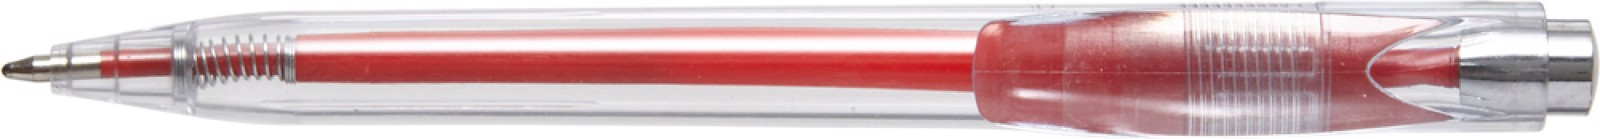 Plastic transparent ballpen with coloured refill - Red